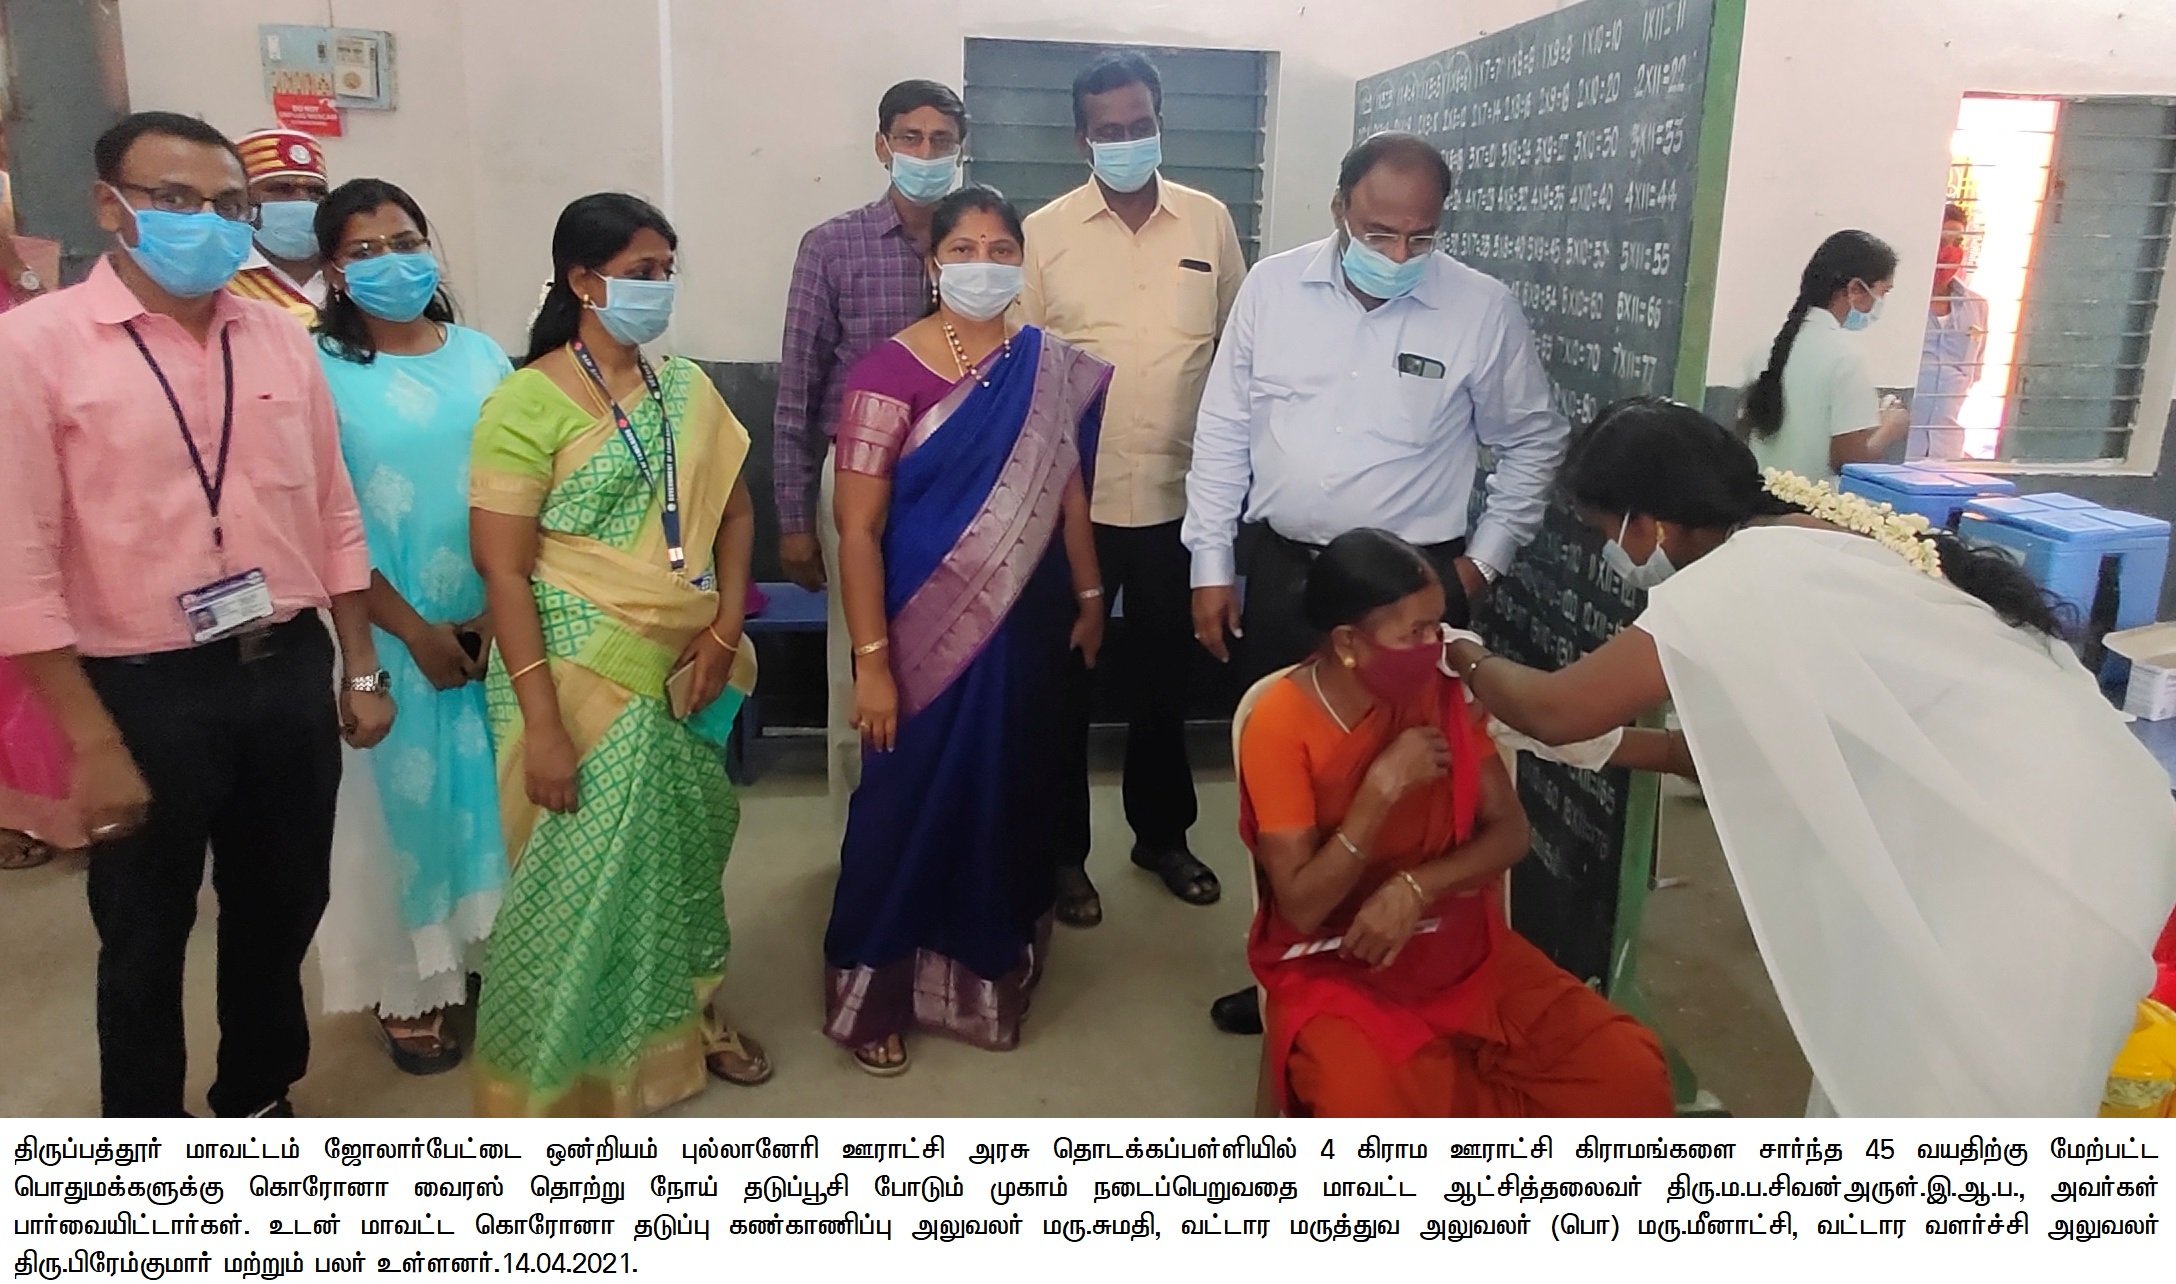 District Collector Inspection 14/04/2021